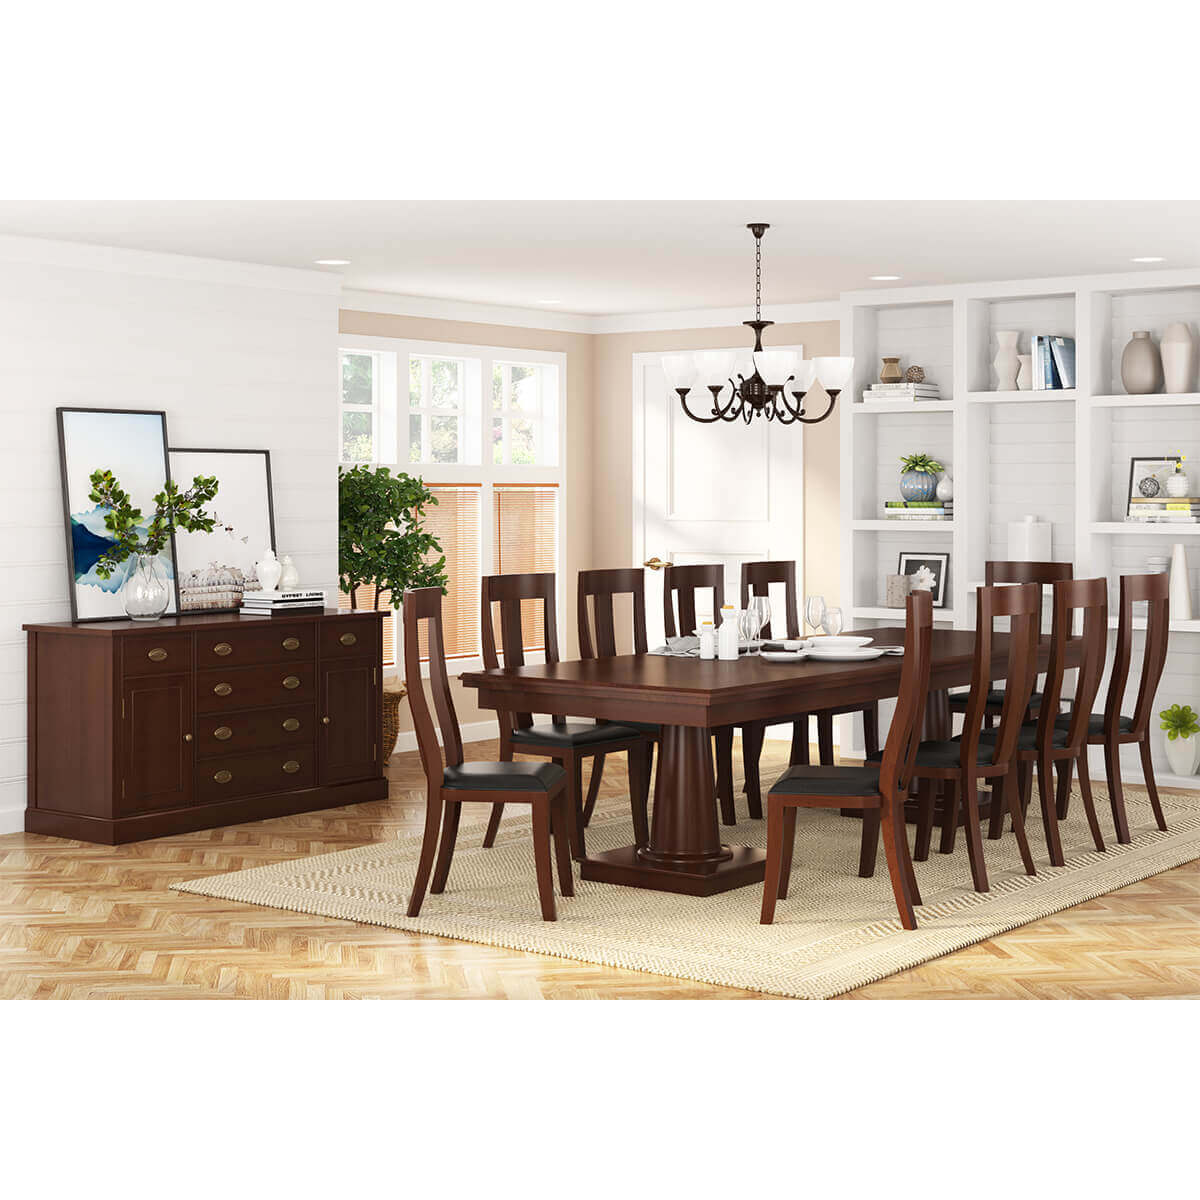 Cazenovia Solid Mahogany Wood 12 Piece Dining Room Set